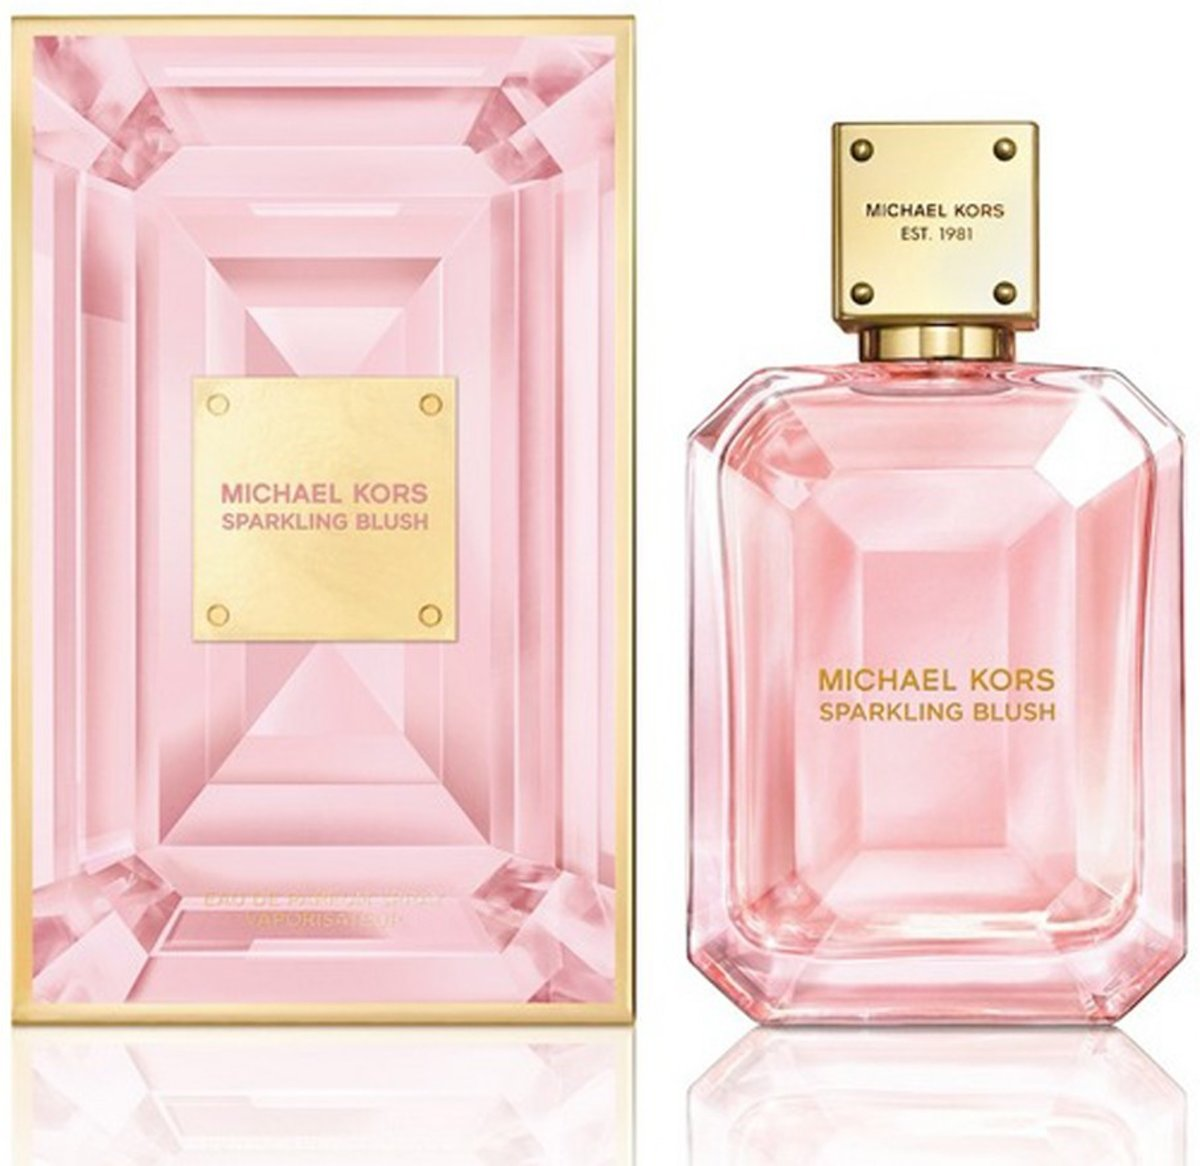 Michael Kors Sparkling Blush 100ml EDP Spray